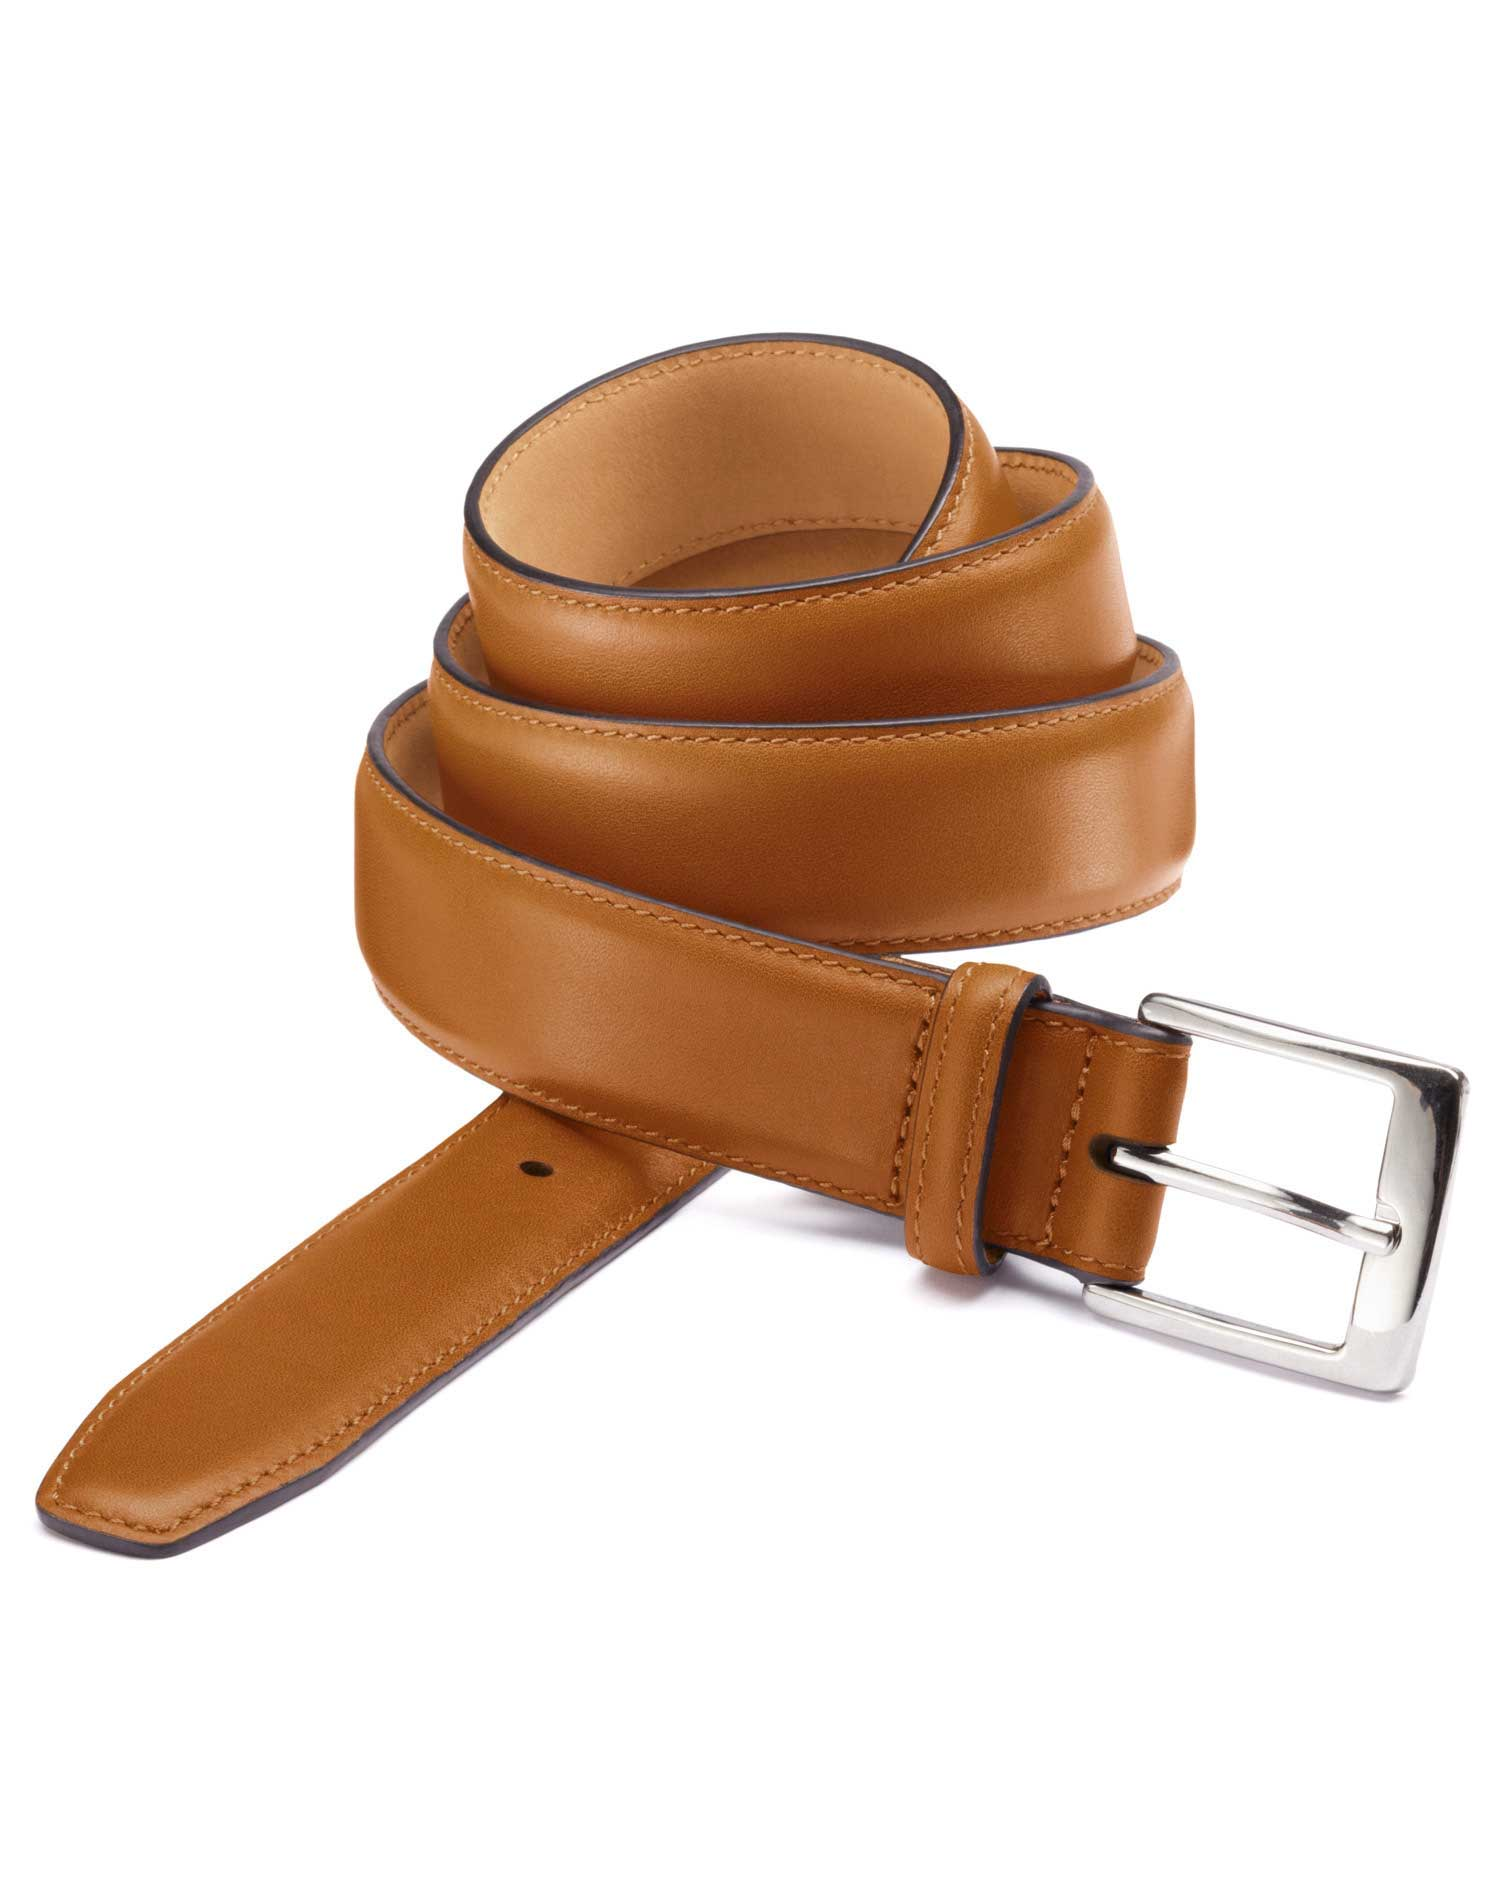 Tan Leather Formal Belt Size 34-36 by Charles Tyrwhitt